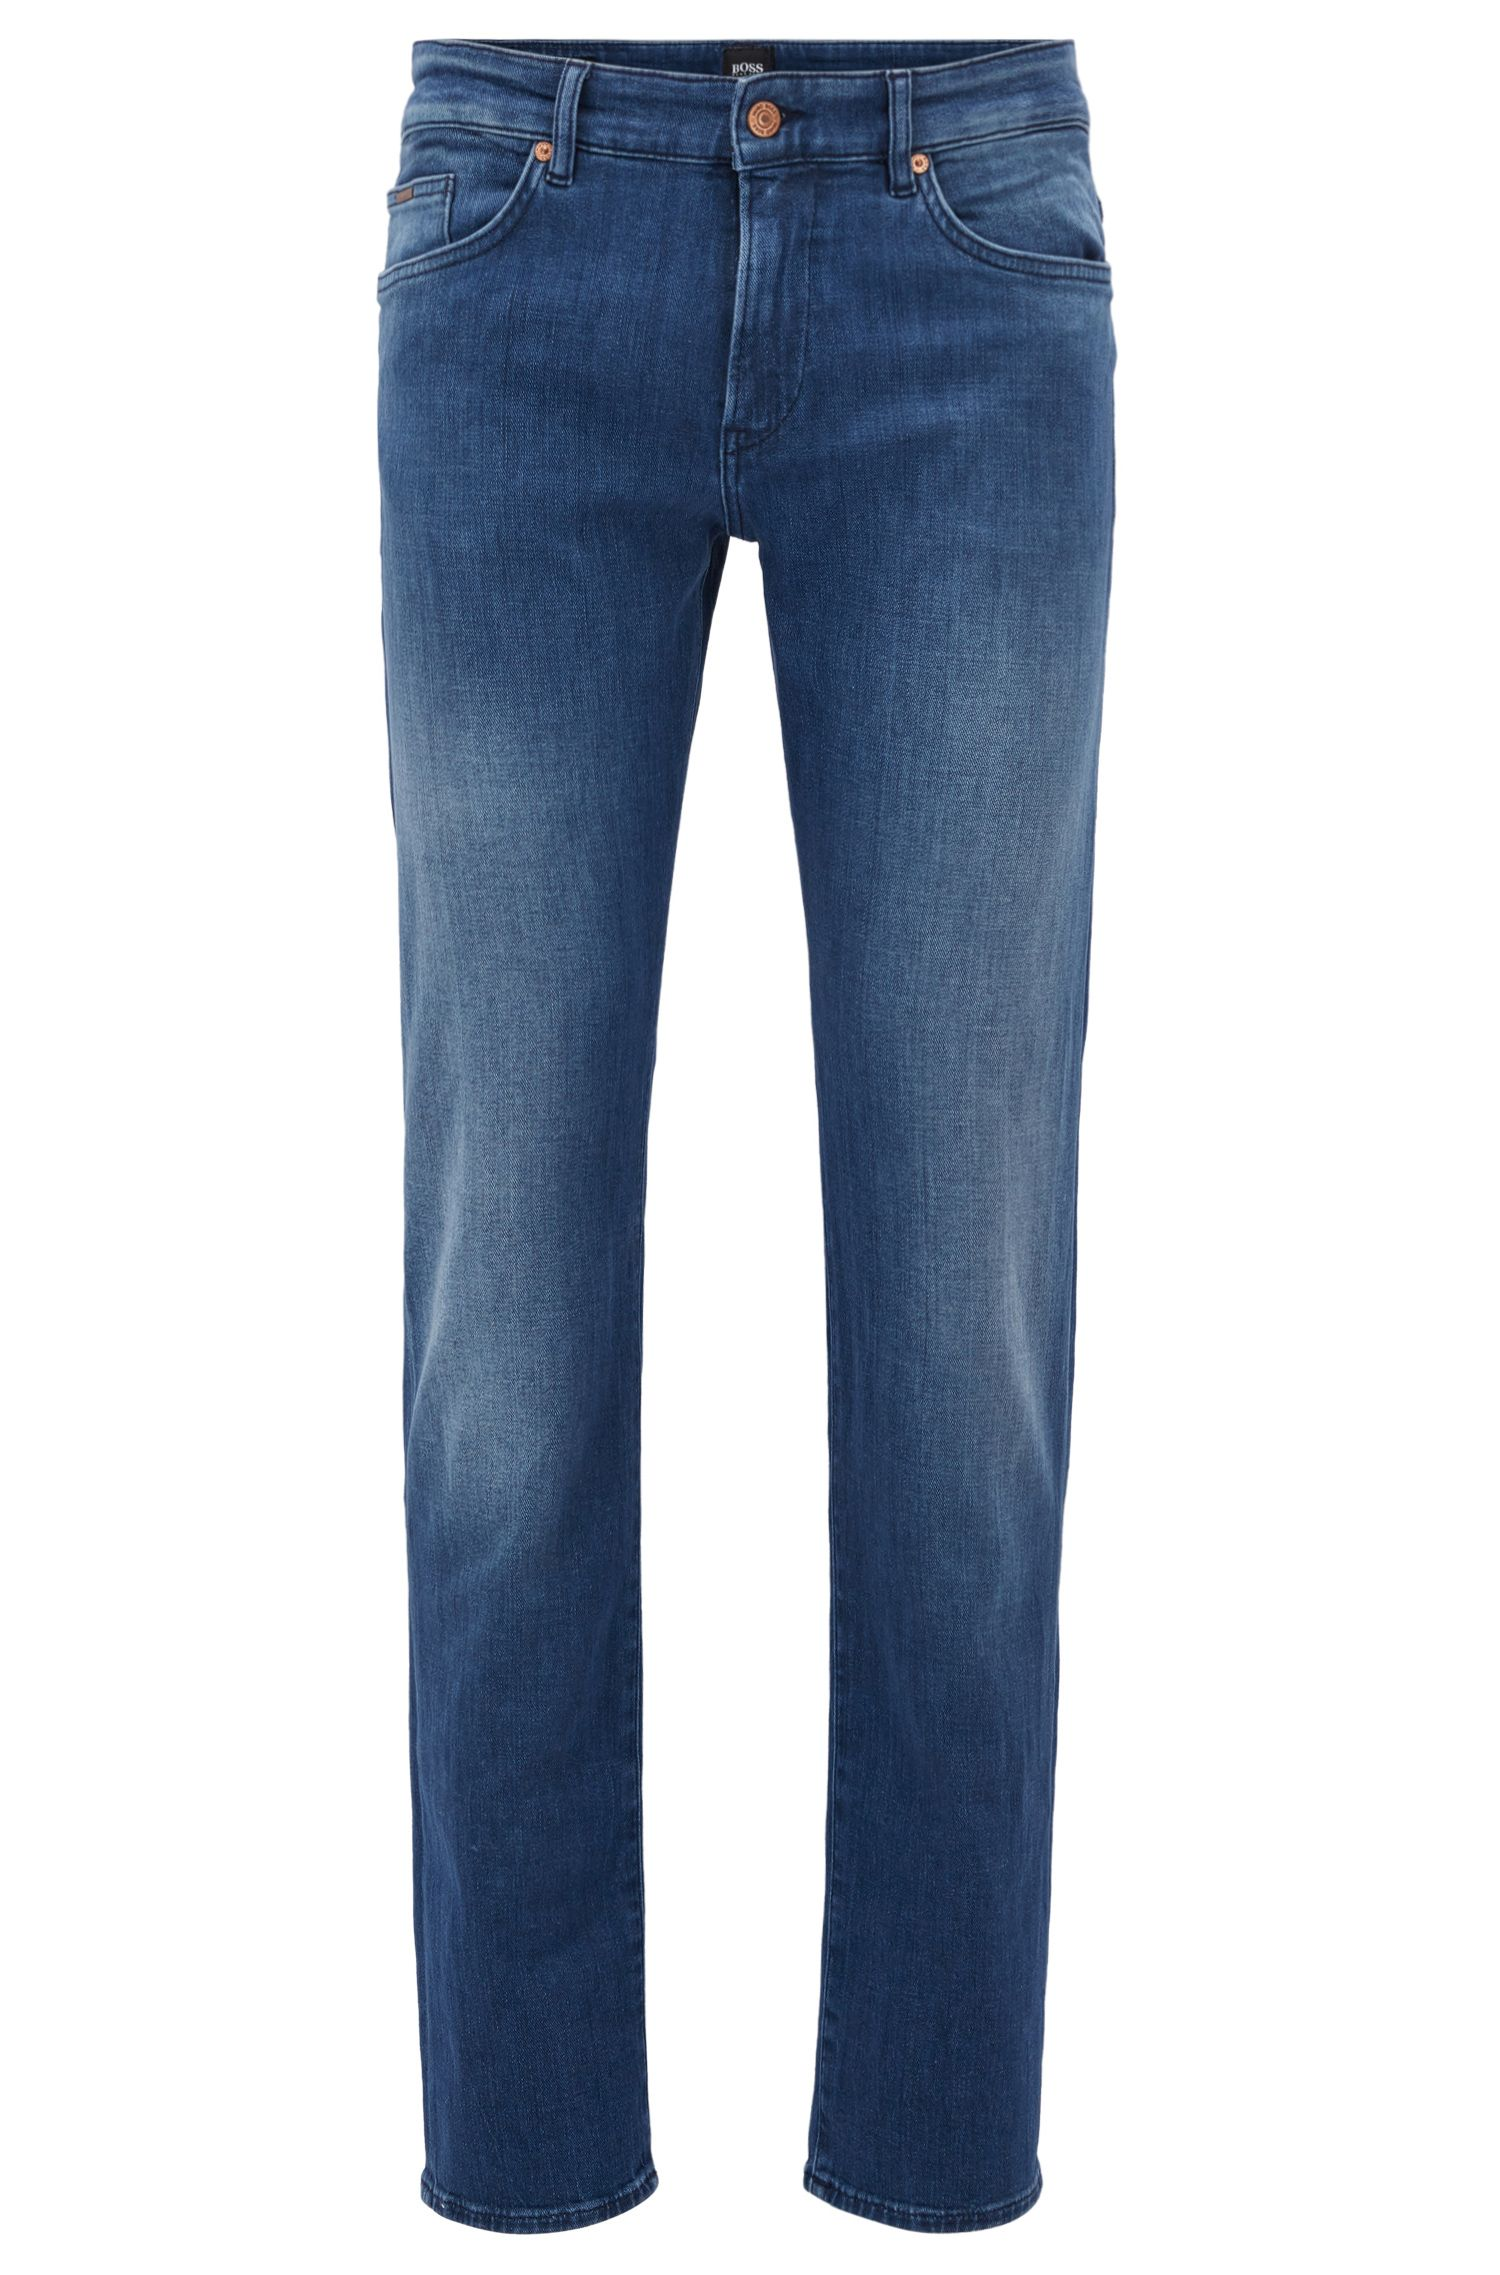 Jean Slim Fit en denim stretch au toucher cachemire